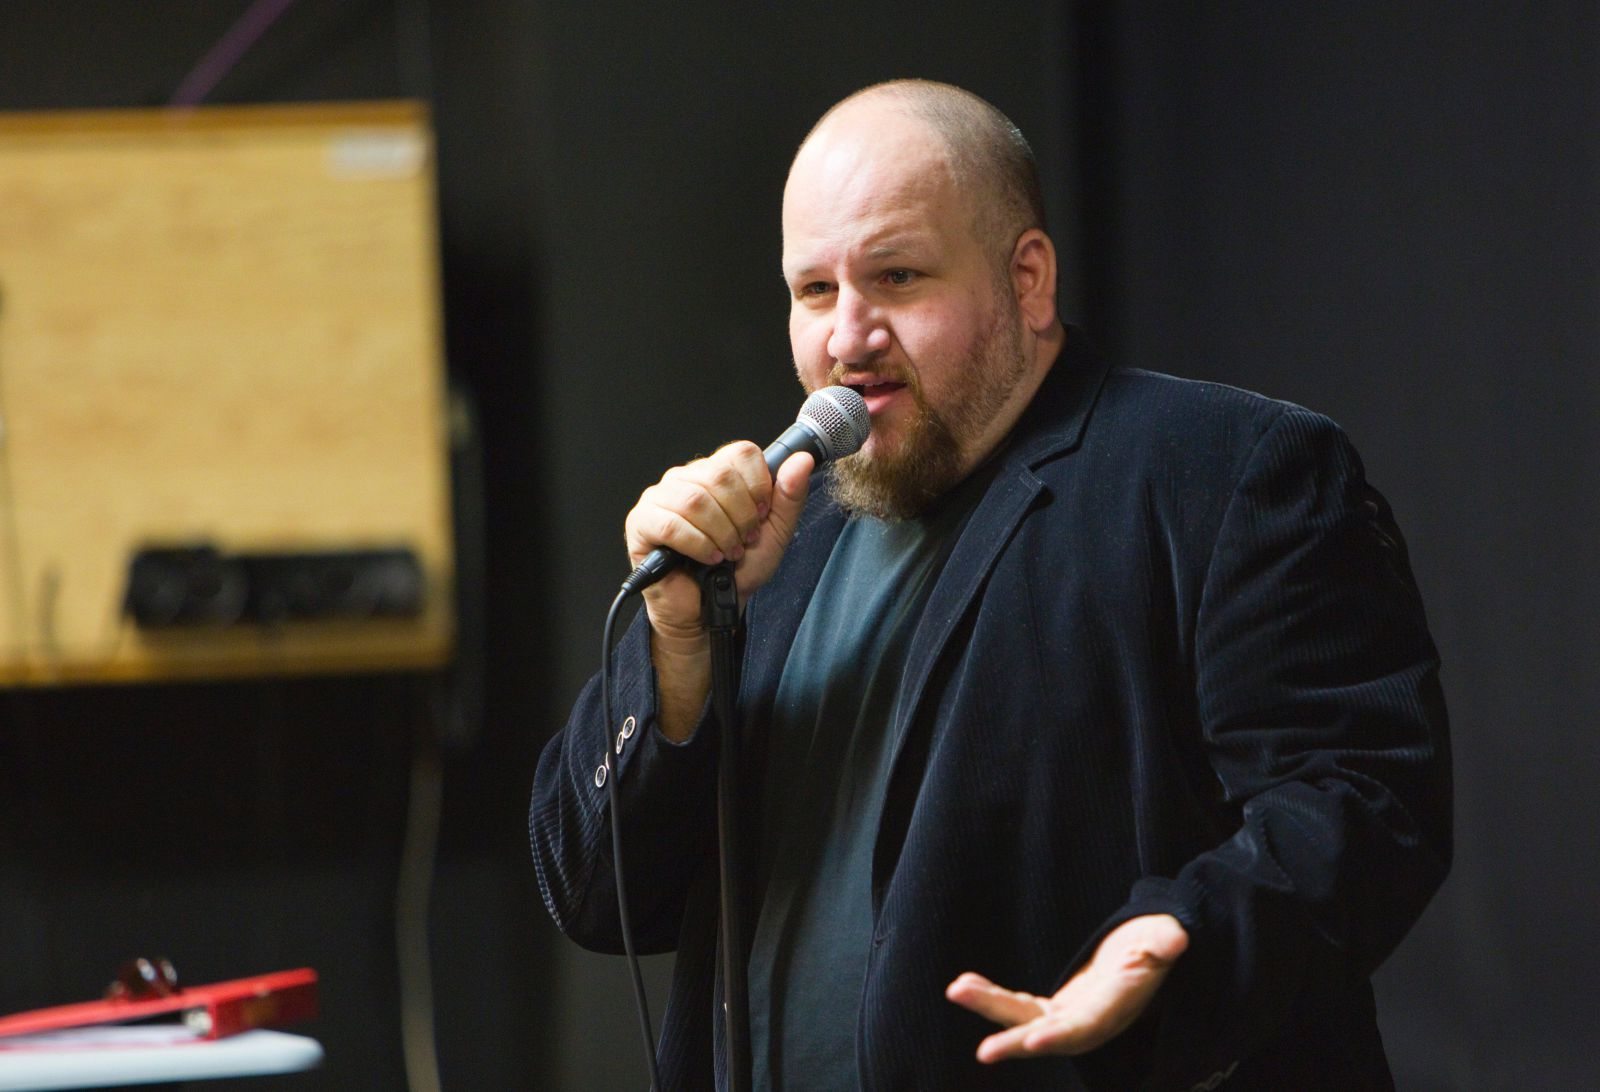 Stephen Kramer Glickman talks to new AMDA students during Fall 2012 Orientation week.